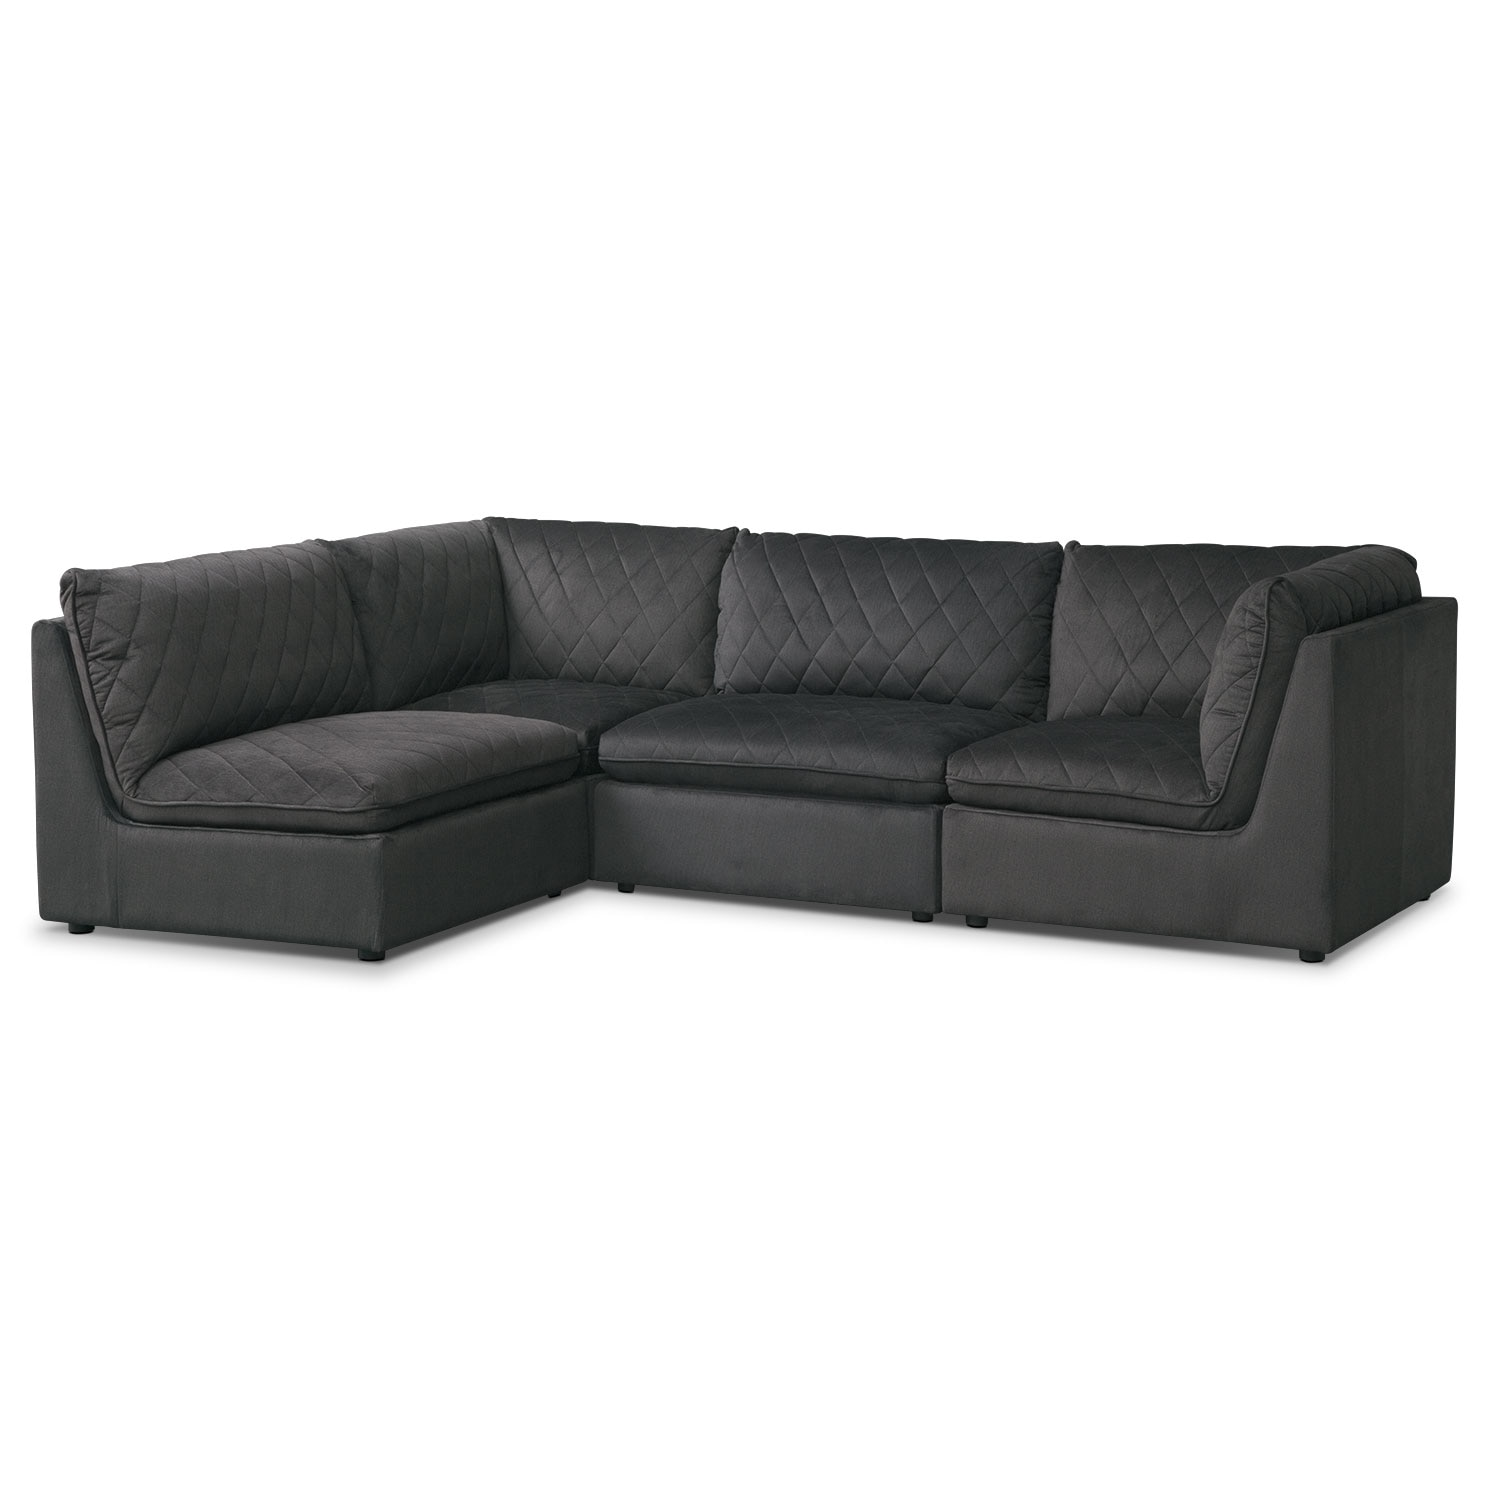 [Coco Charcoal 4 Pc. Sectional]